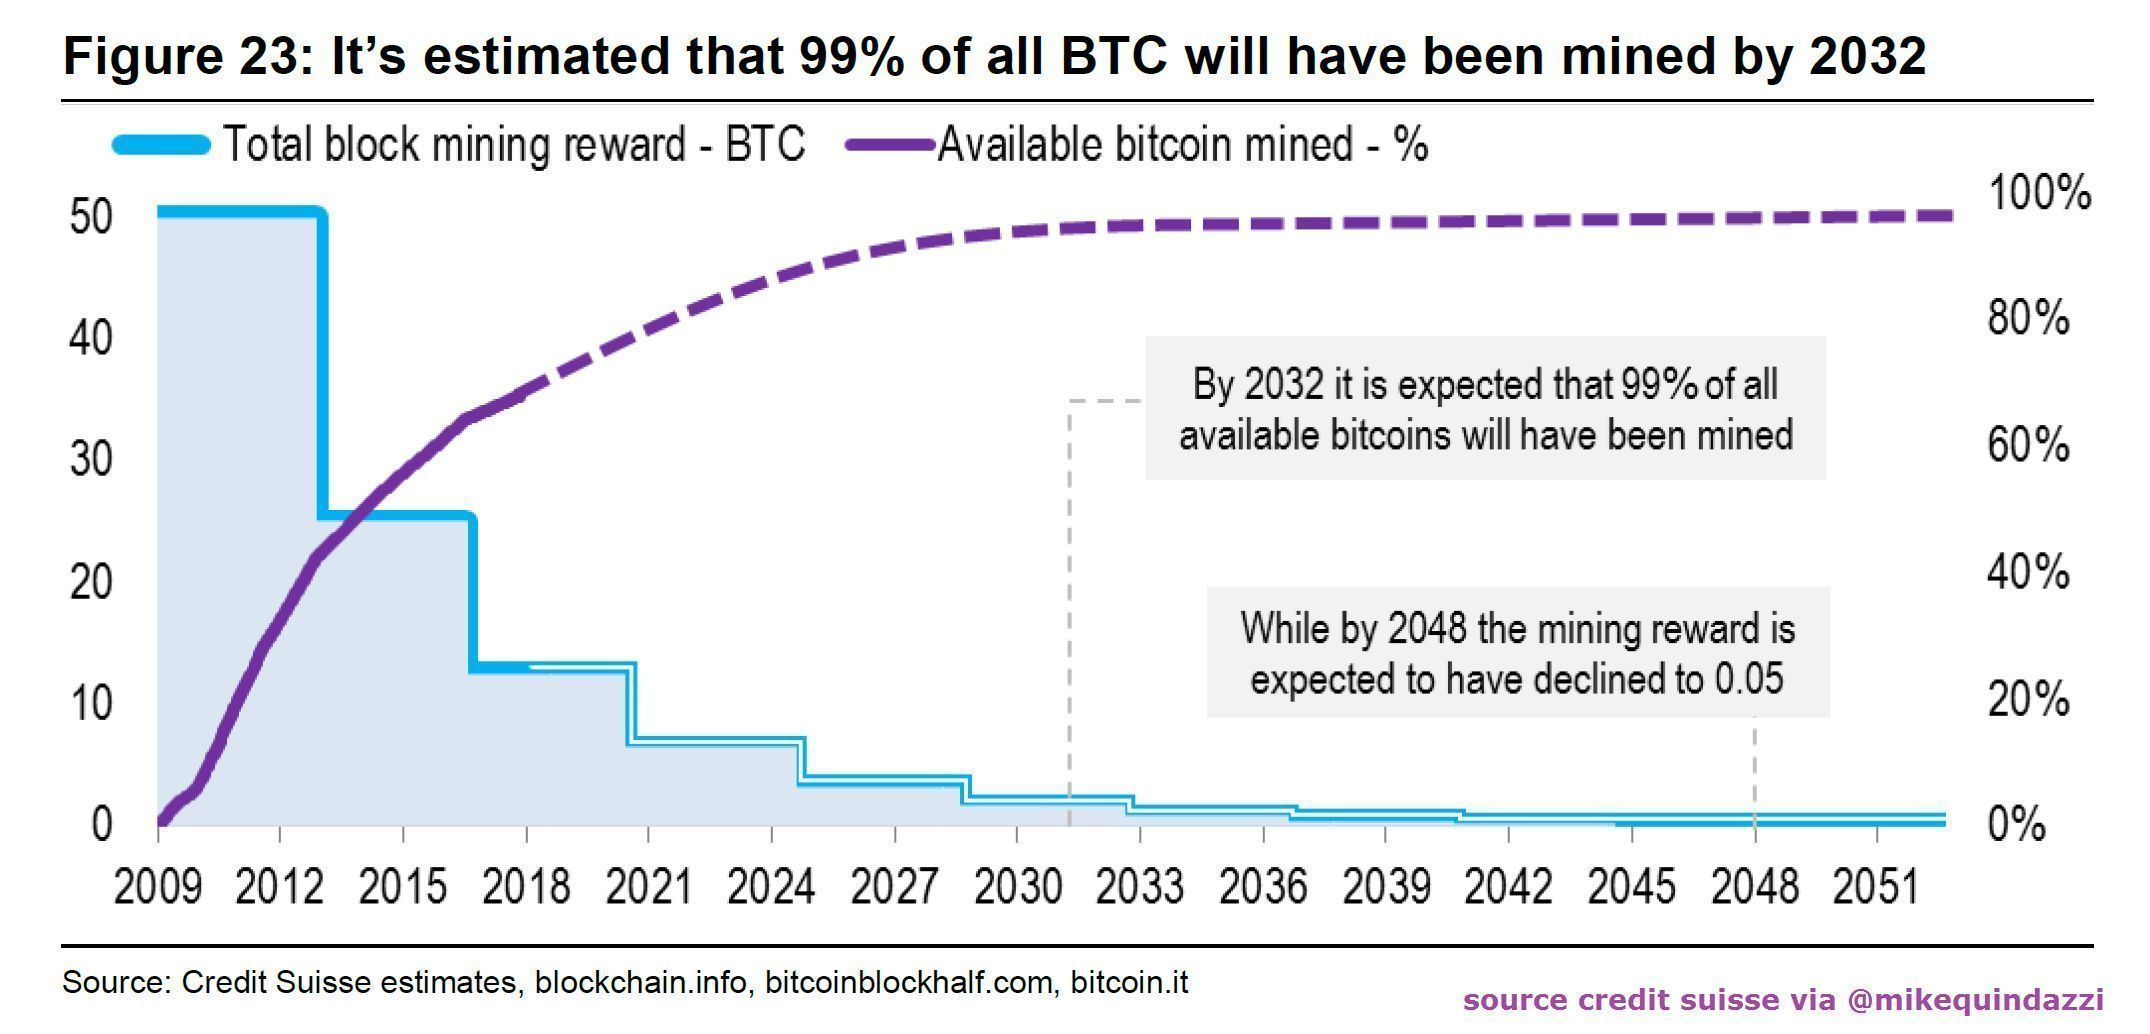 99 of bitcoin is projected to be mined by 2032